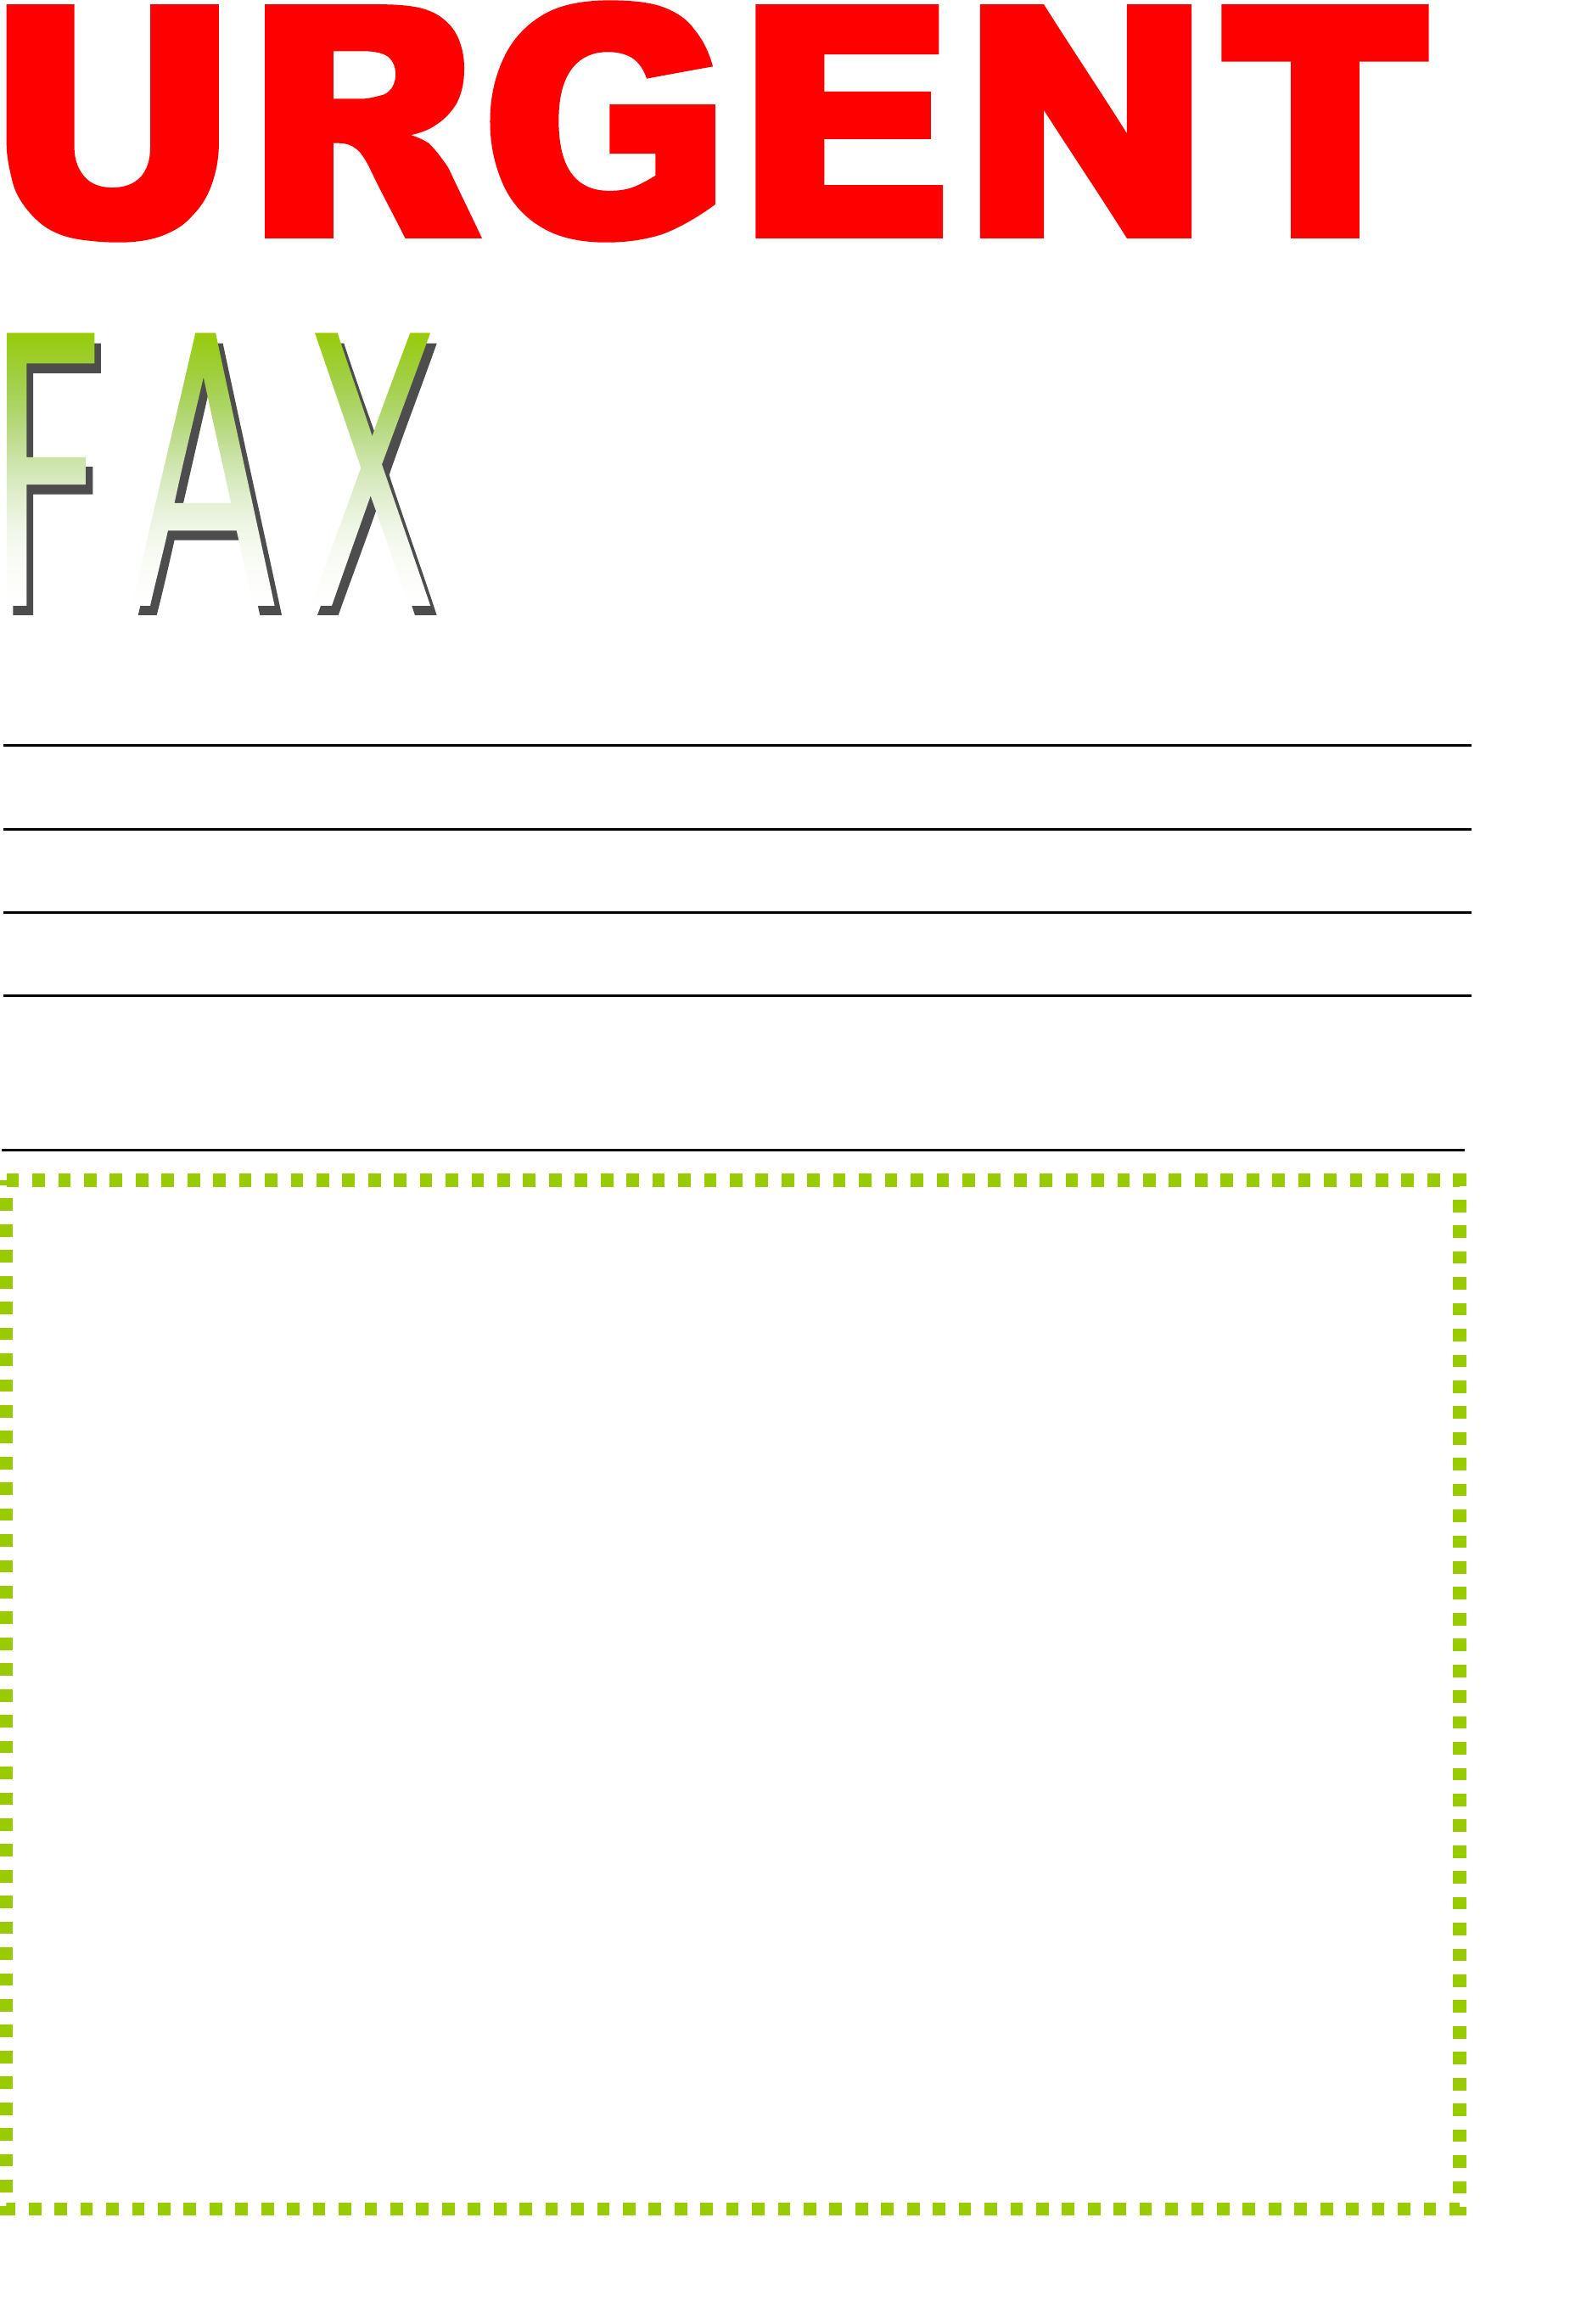 sample urgent fax cover sheet to